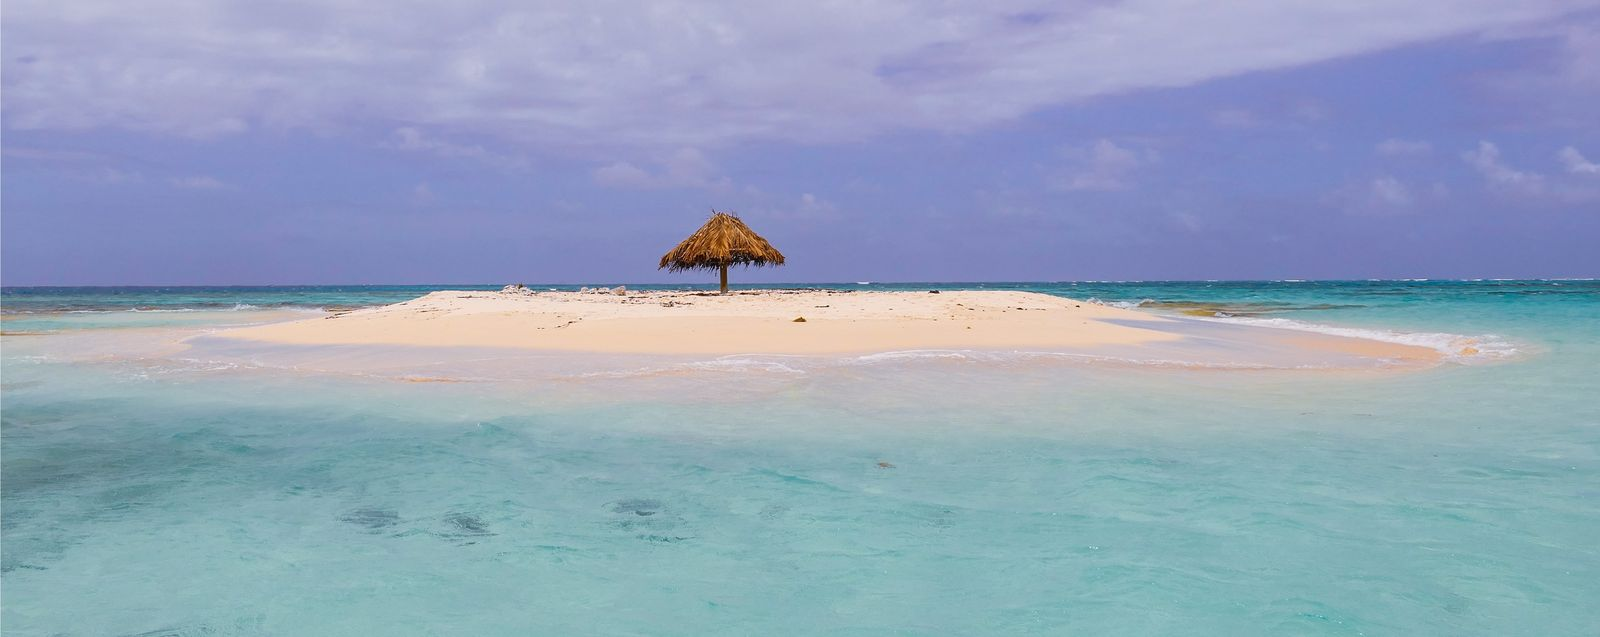 Caribbean Island only by sailboat